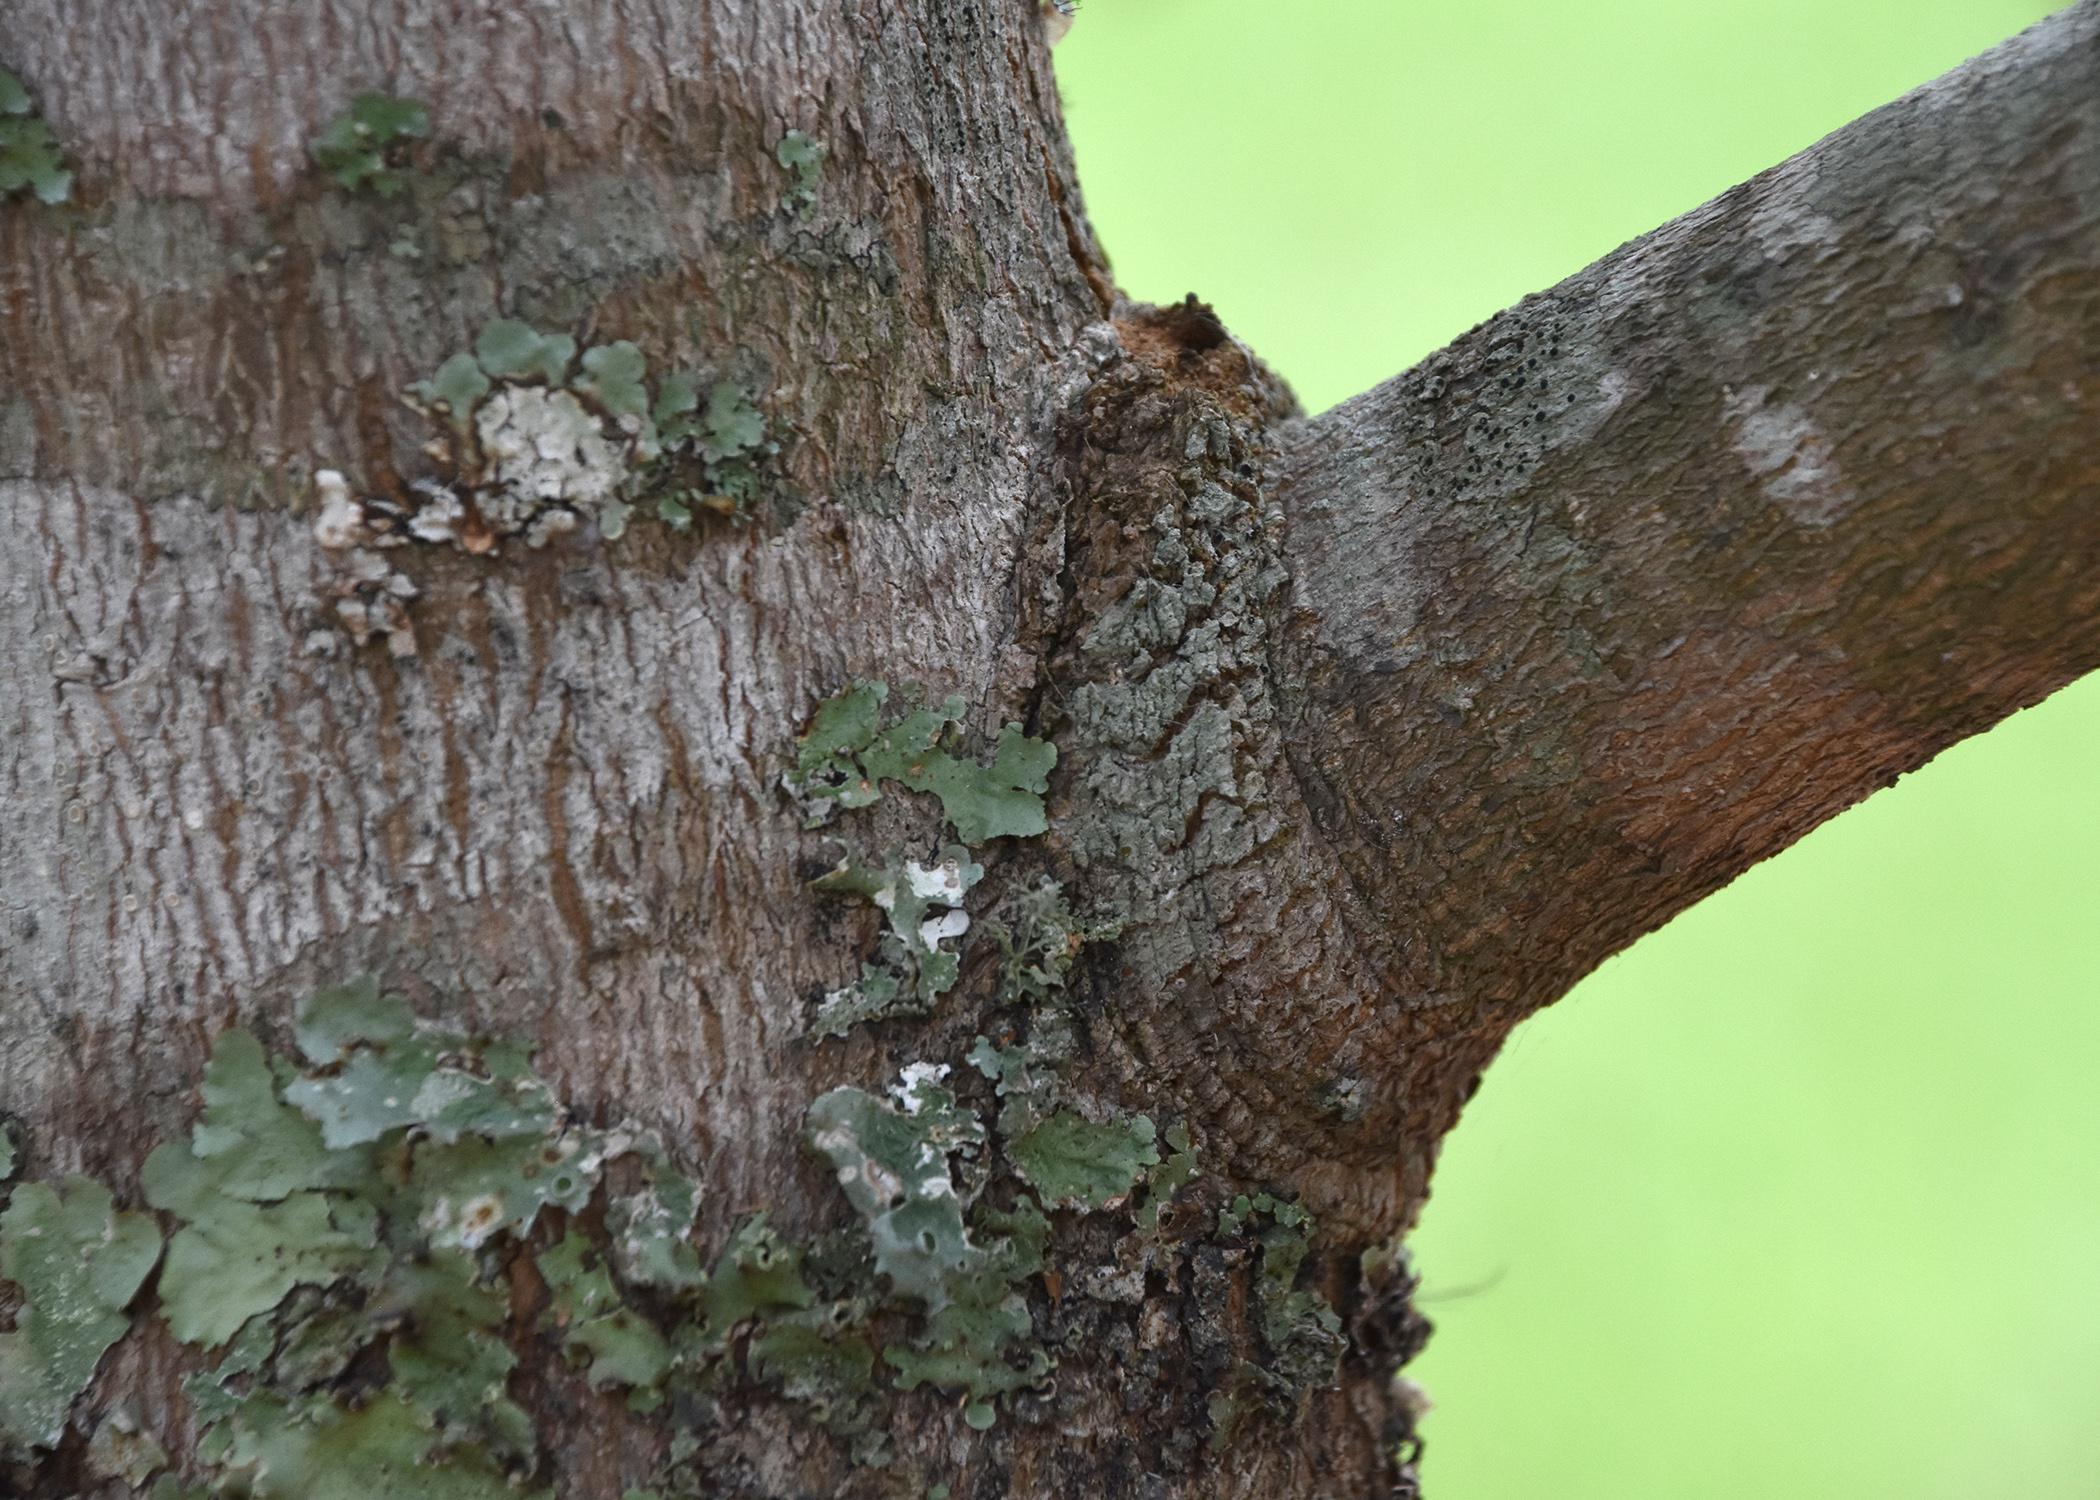 Trim branches at the branch collar, which is a slightly raised area around the point where the branch is connected to the tree trunk. The tree will heal better if the branch is removed at this point rather than flush with the trunk (Photo by MSU Extension Service/Gary Bachman)